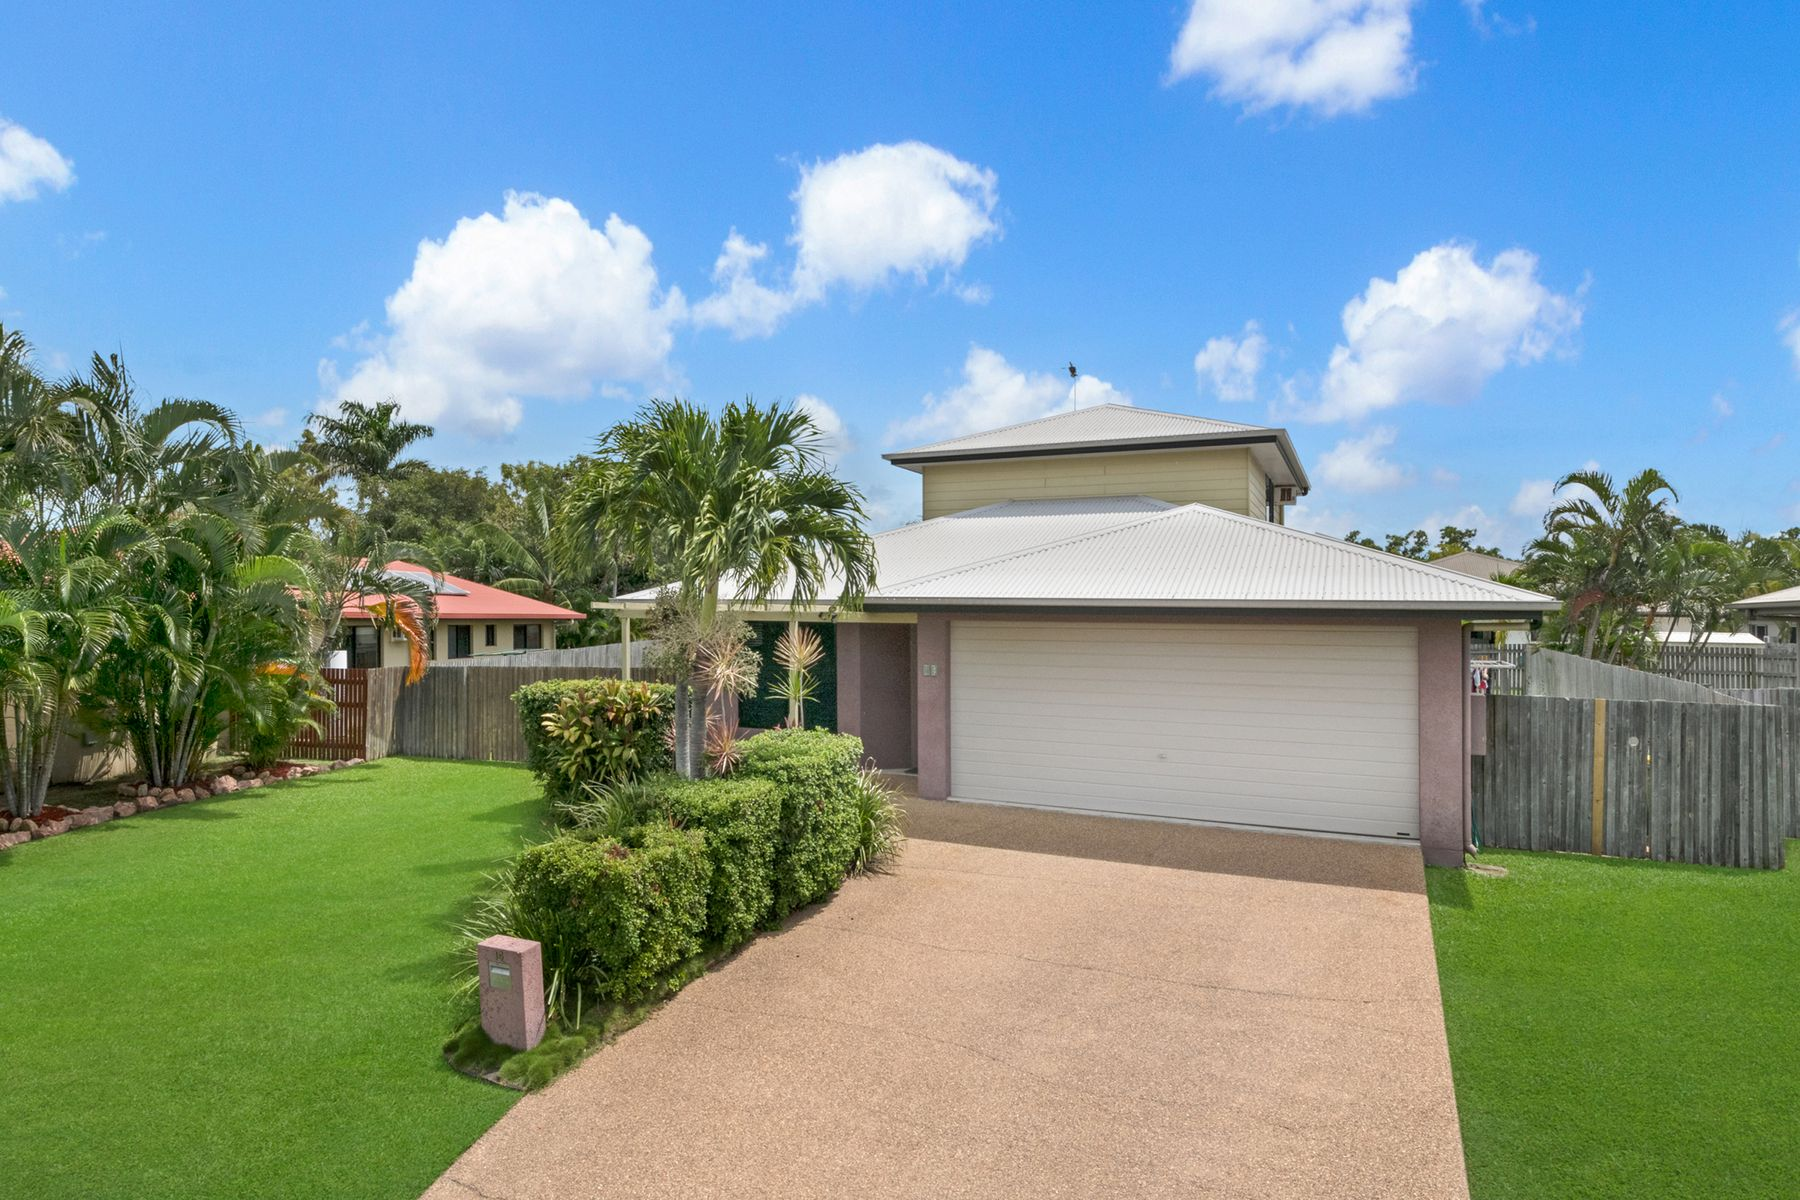 14 Heathcote Court, Deeragun, QLD 4818